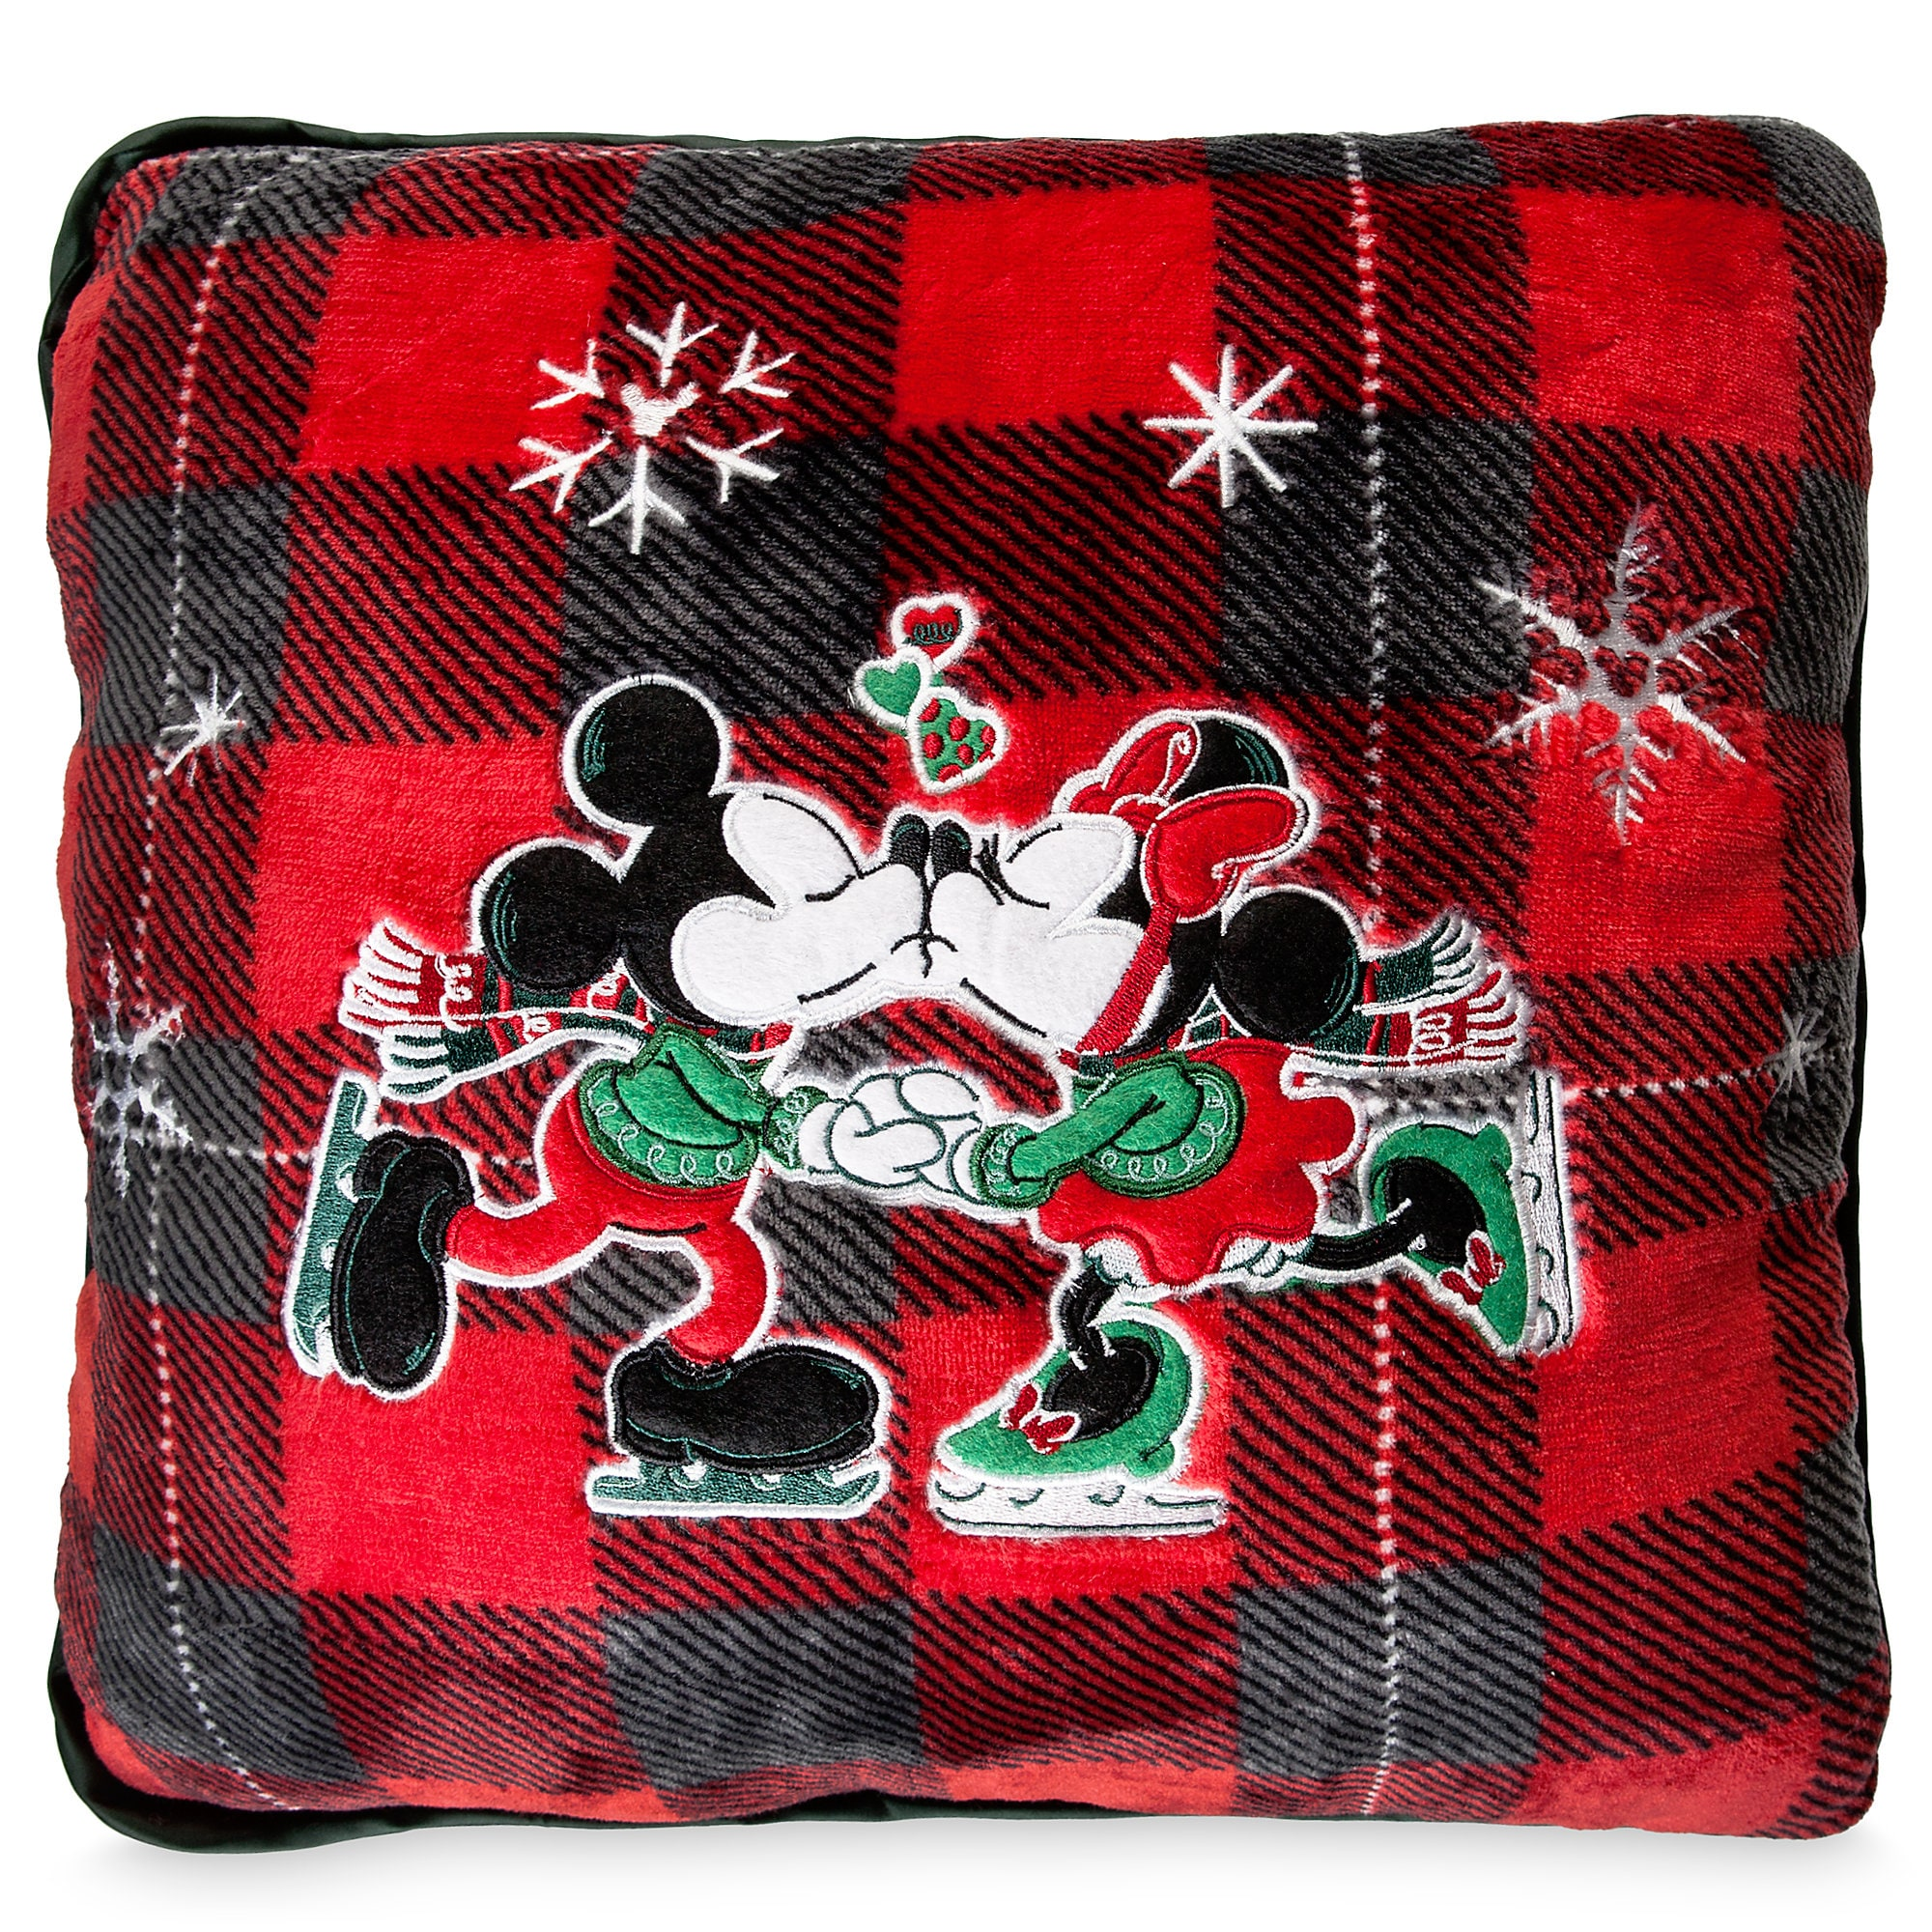 Mickey and Minnie Mouse Holiday Plush Pillow